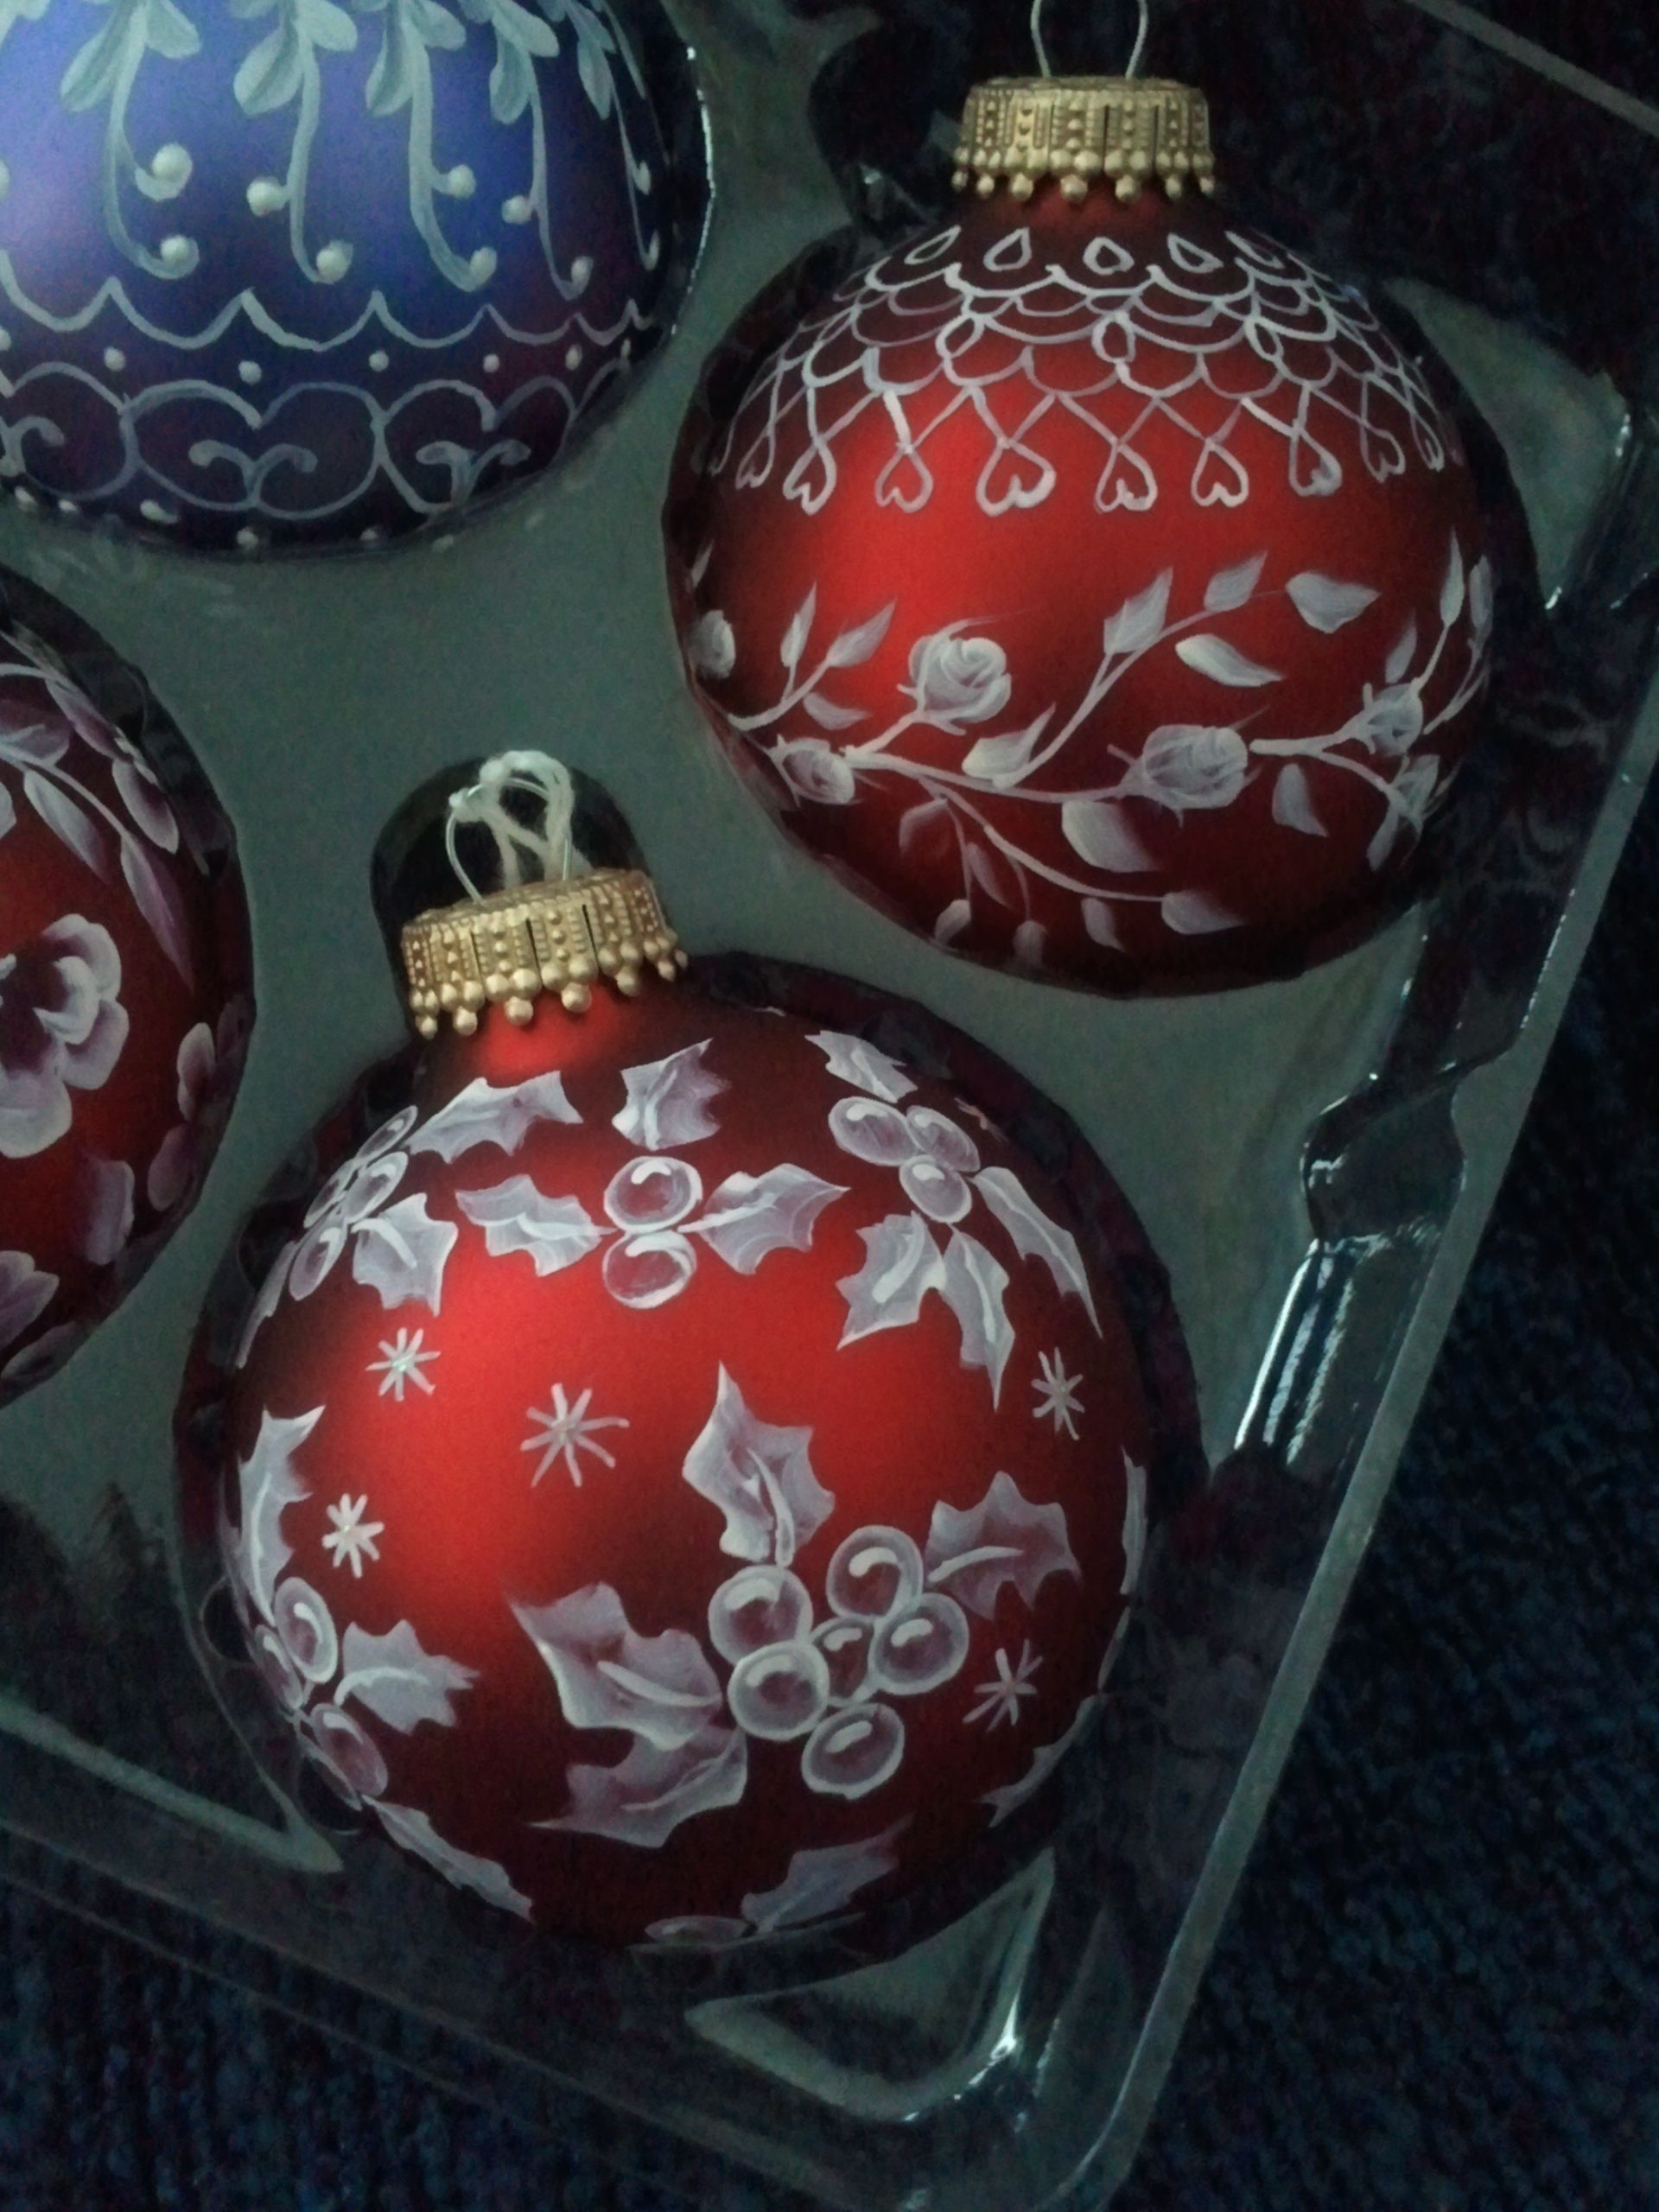 Hand Painted Victorian Look Ornaments Make Great Wedding Gifts Keepsa Painted Christmas Ornaments Handpainted Christmas Ornaments Handmade Christmas Ornaments